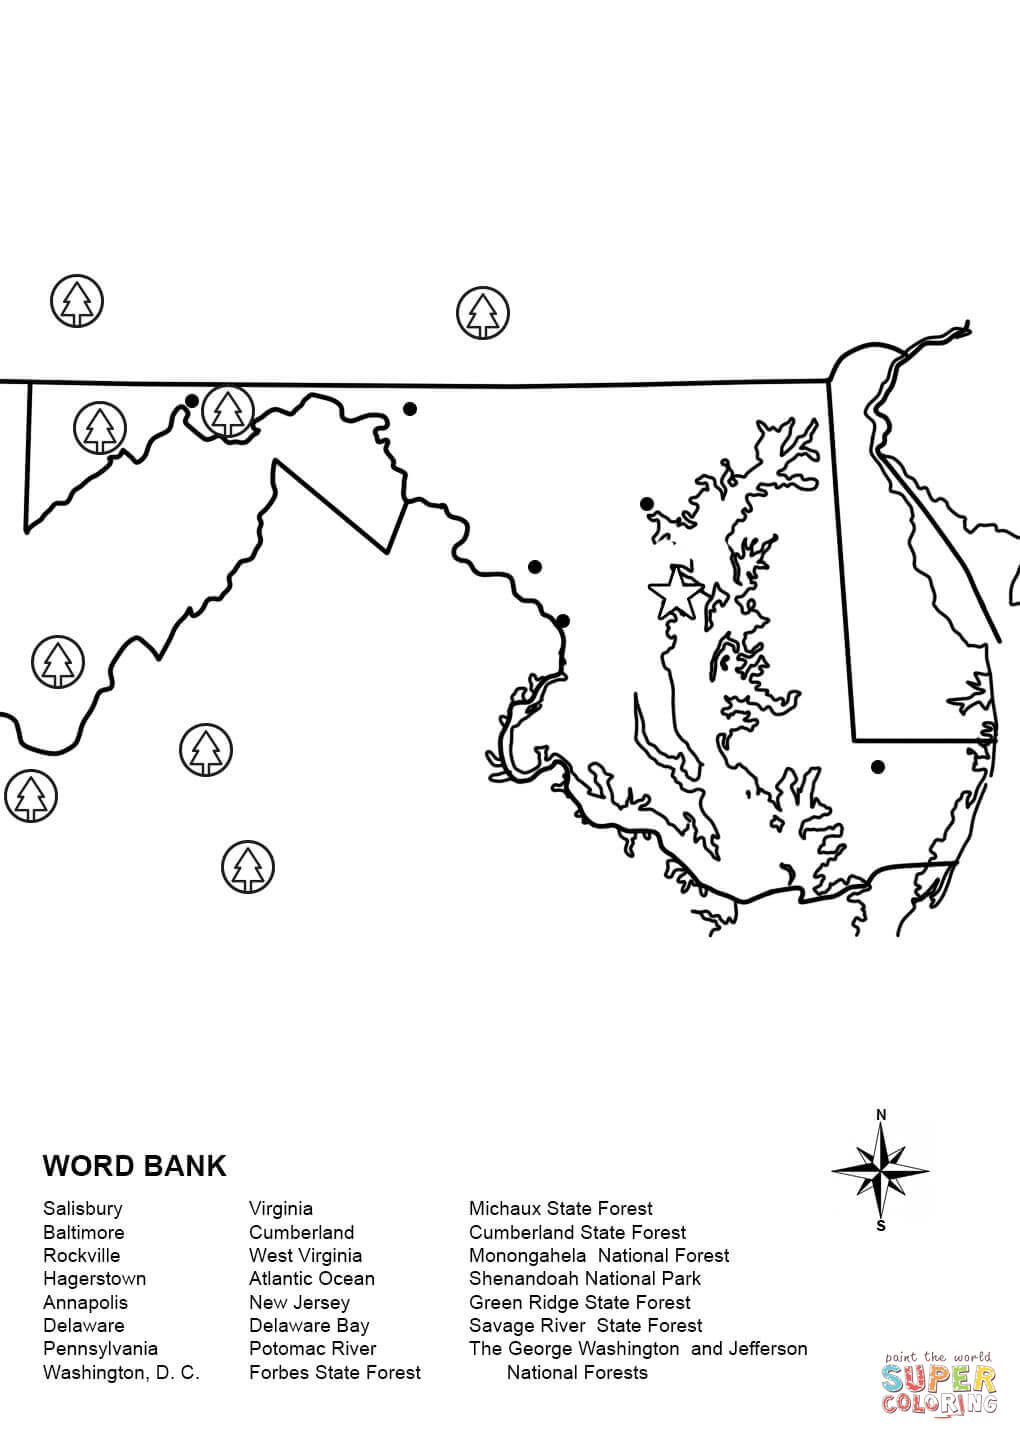 maryland coloring pages maryland coloring page coloring home coloring pages maryland 1 1